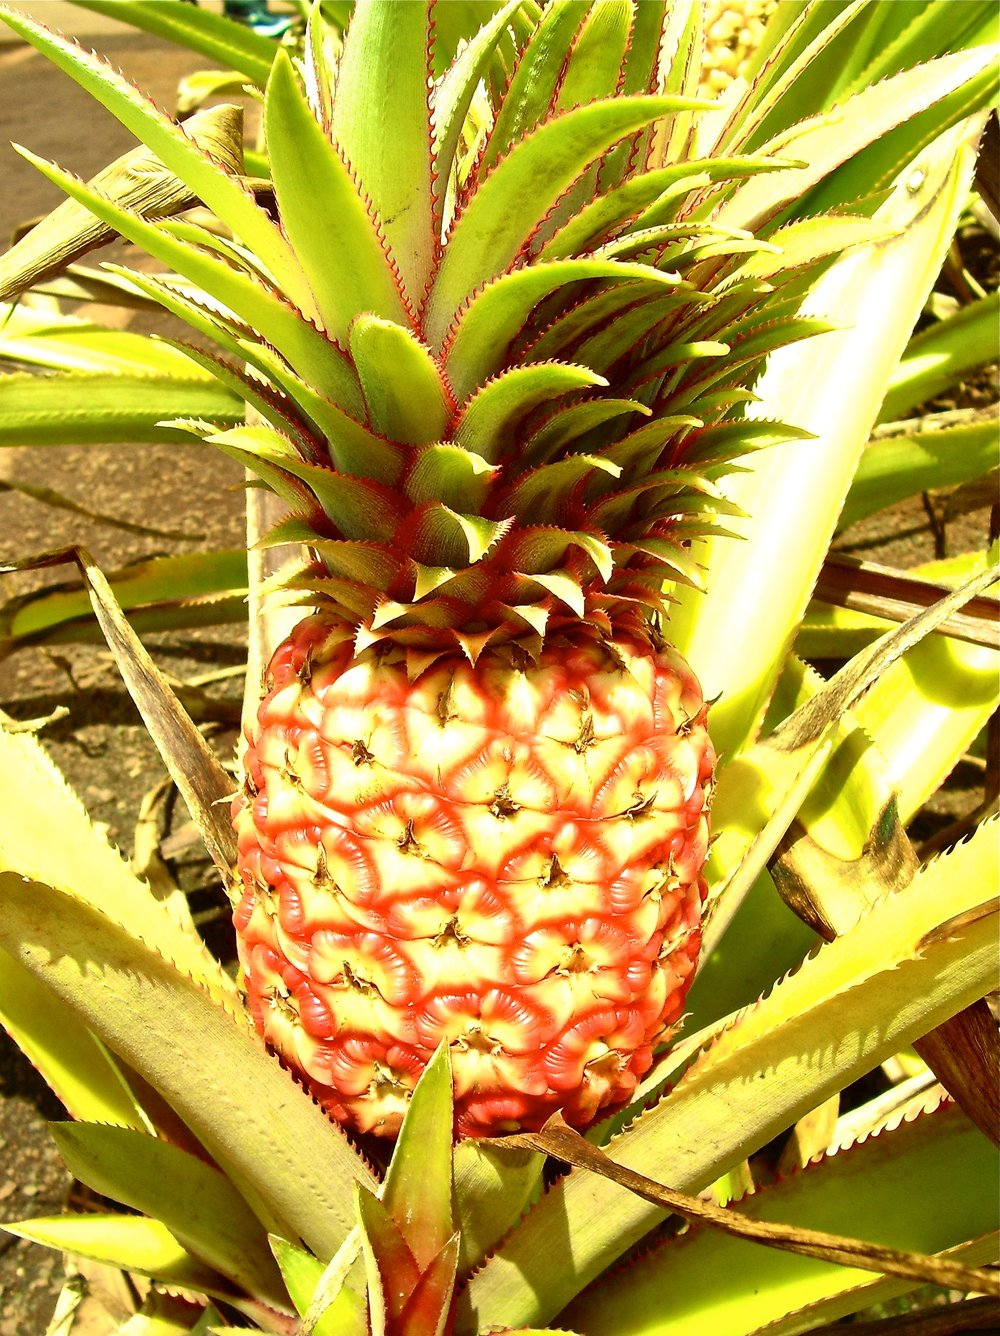 Don't Touch The Pineapple! How to Get Arrested in Hawaii